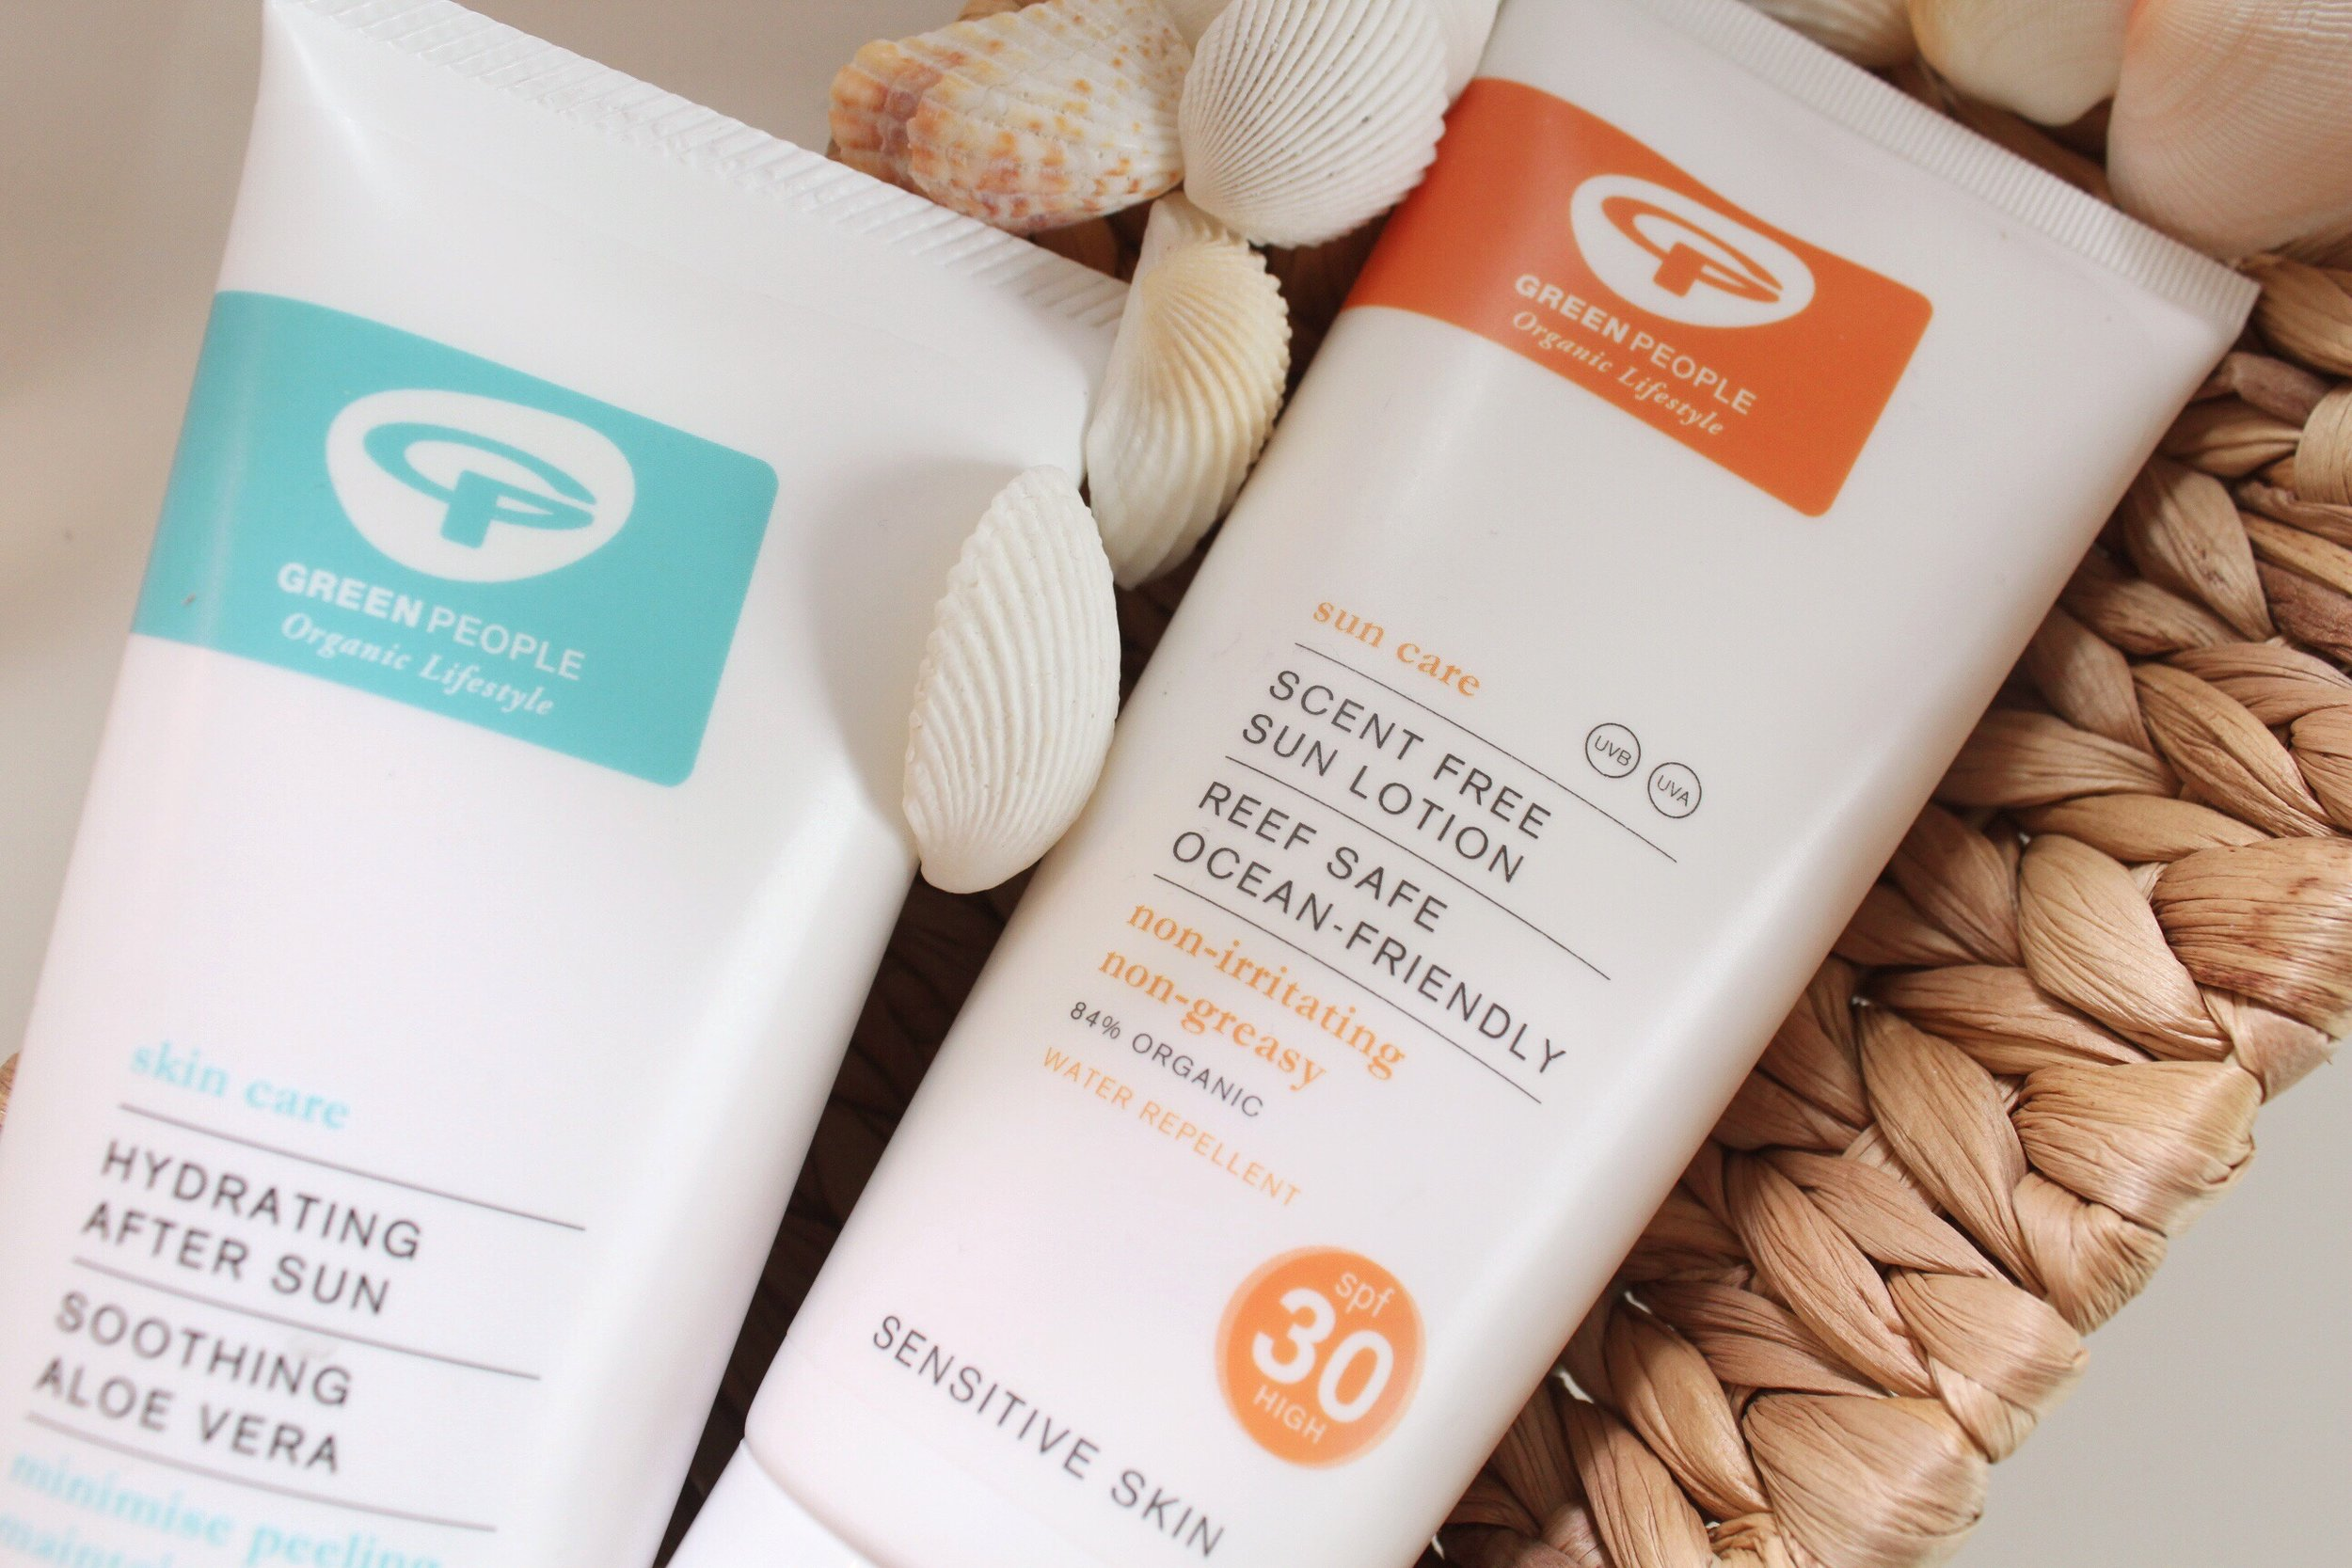 Green People UK Sensitive Skin Reef Safe Ocean Friendly Suncare Review Emma Curran